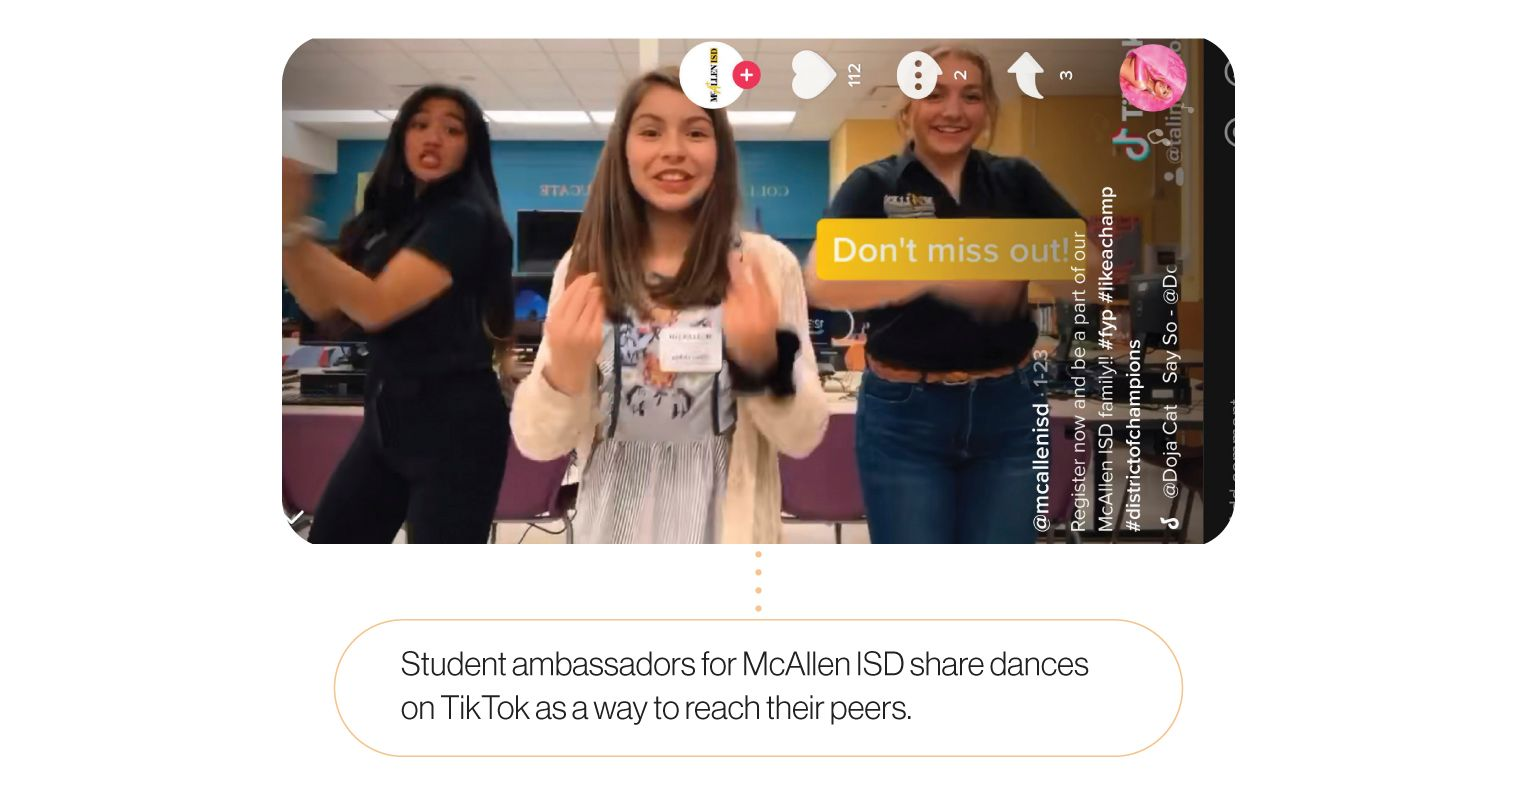 Image: A still from one of McAllen ISD's TikTok videos. Student ambassadors from McAllen ISD share dances on TikTok as a way to reach their peers.